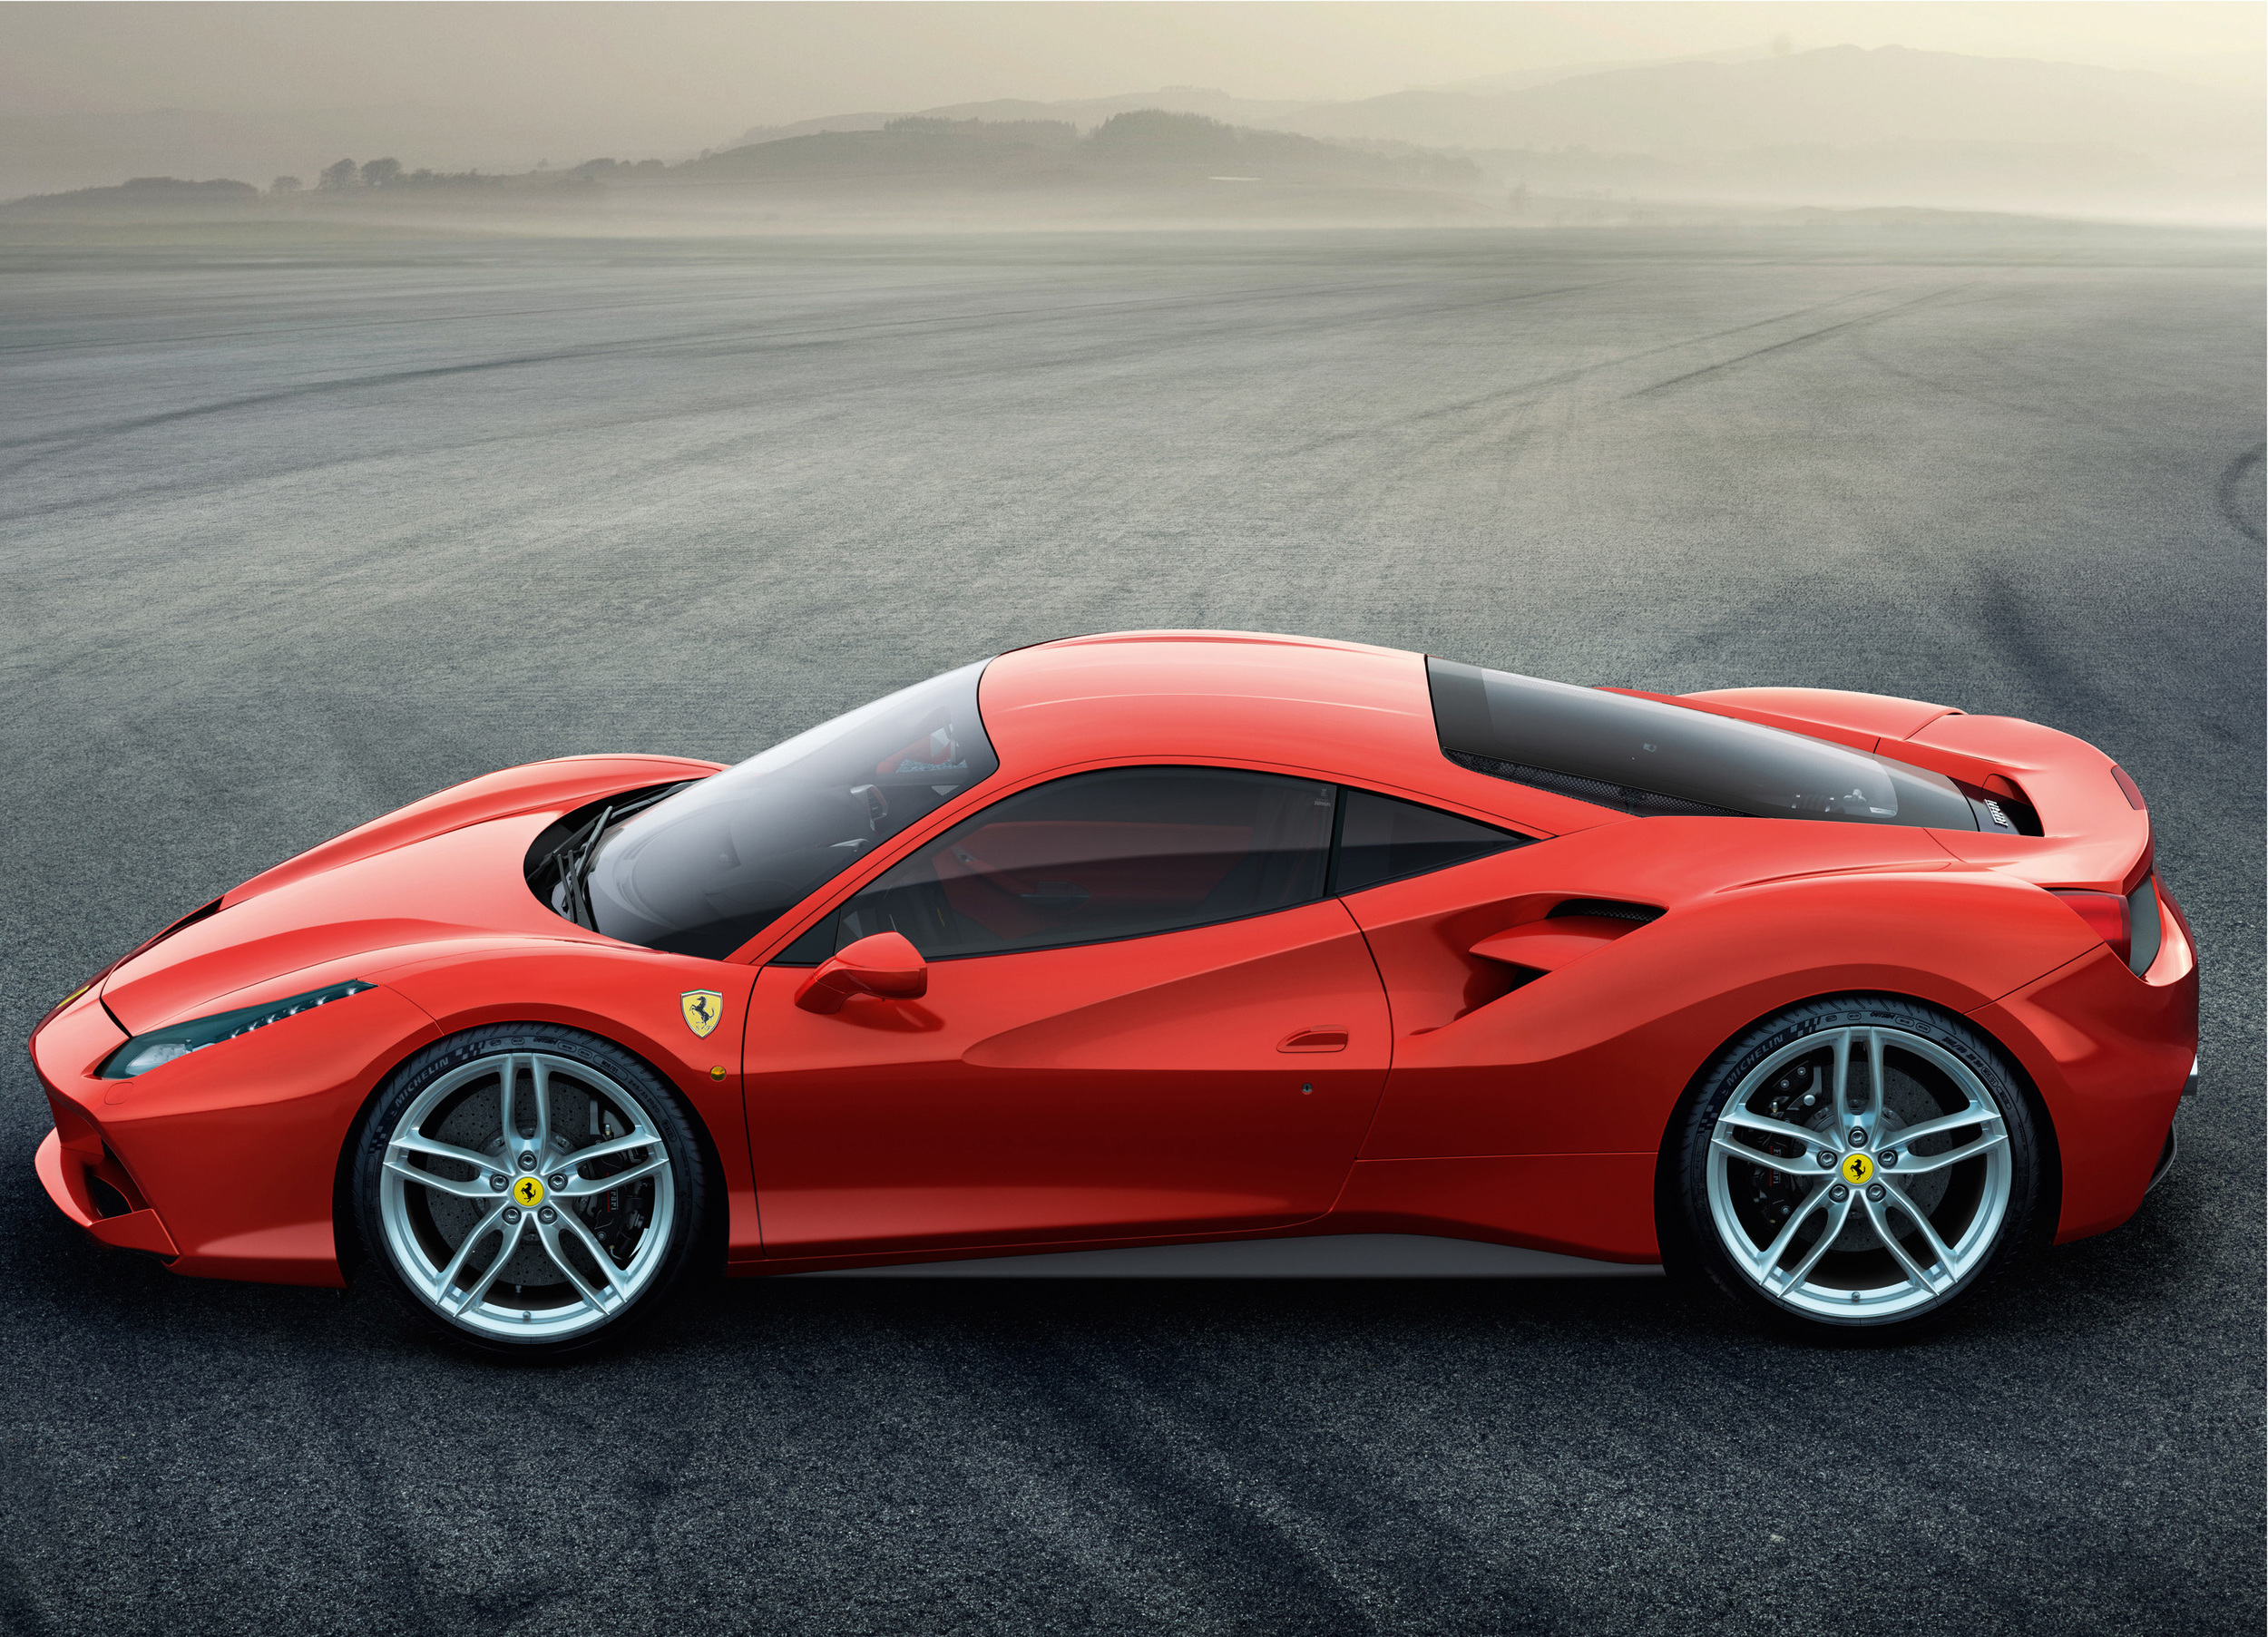 The Ferarri 488GTB